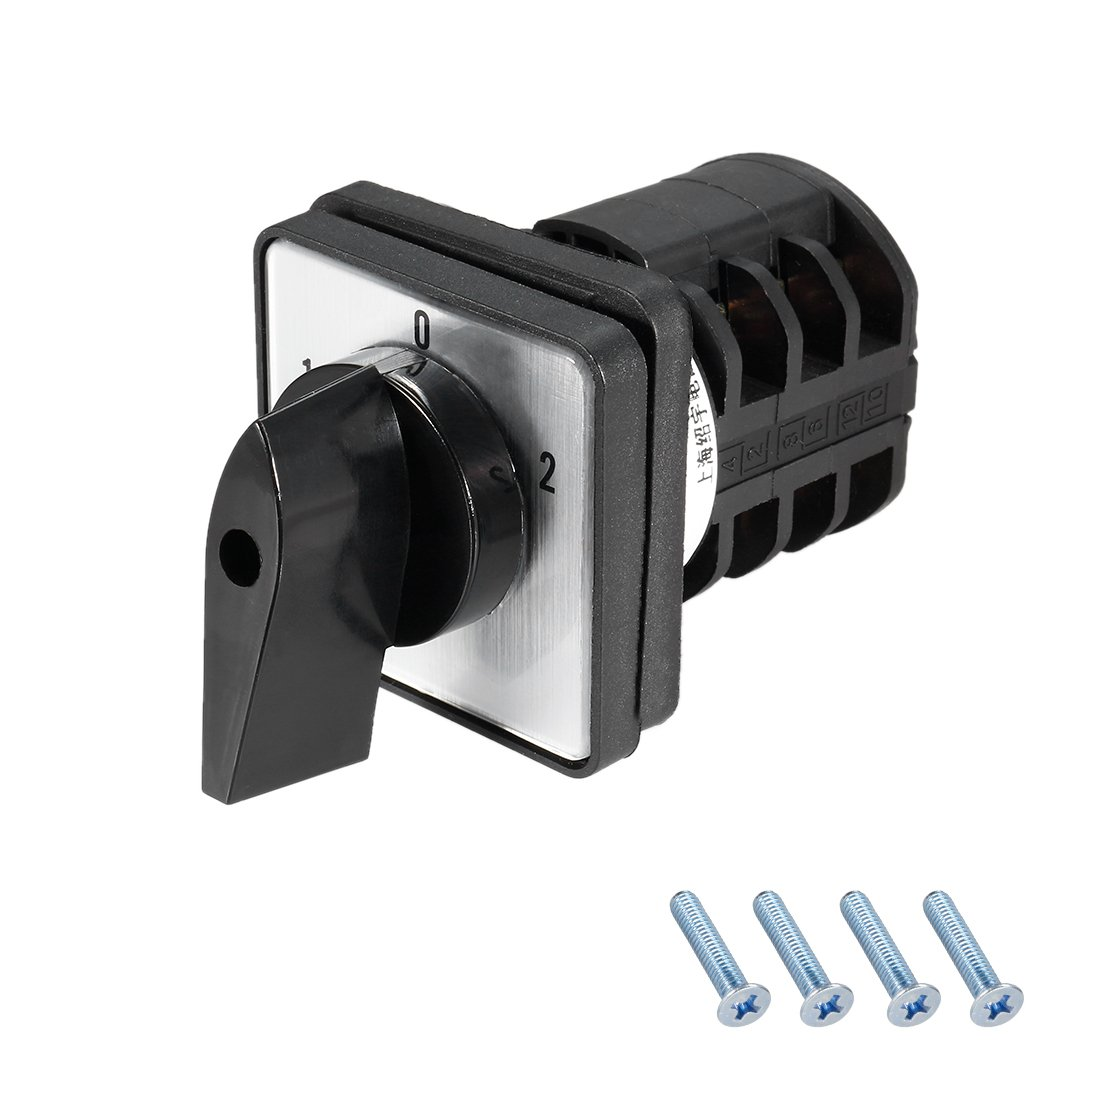 uxcell a14101300ux0573 660V 20A 3 Position Panel Mounting Select Rotary Cam Changeover Switch